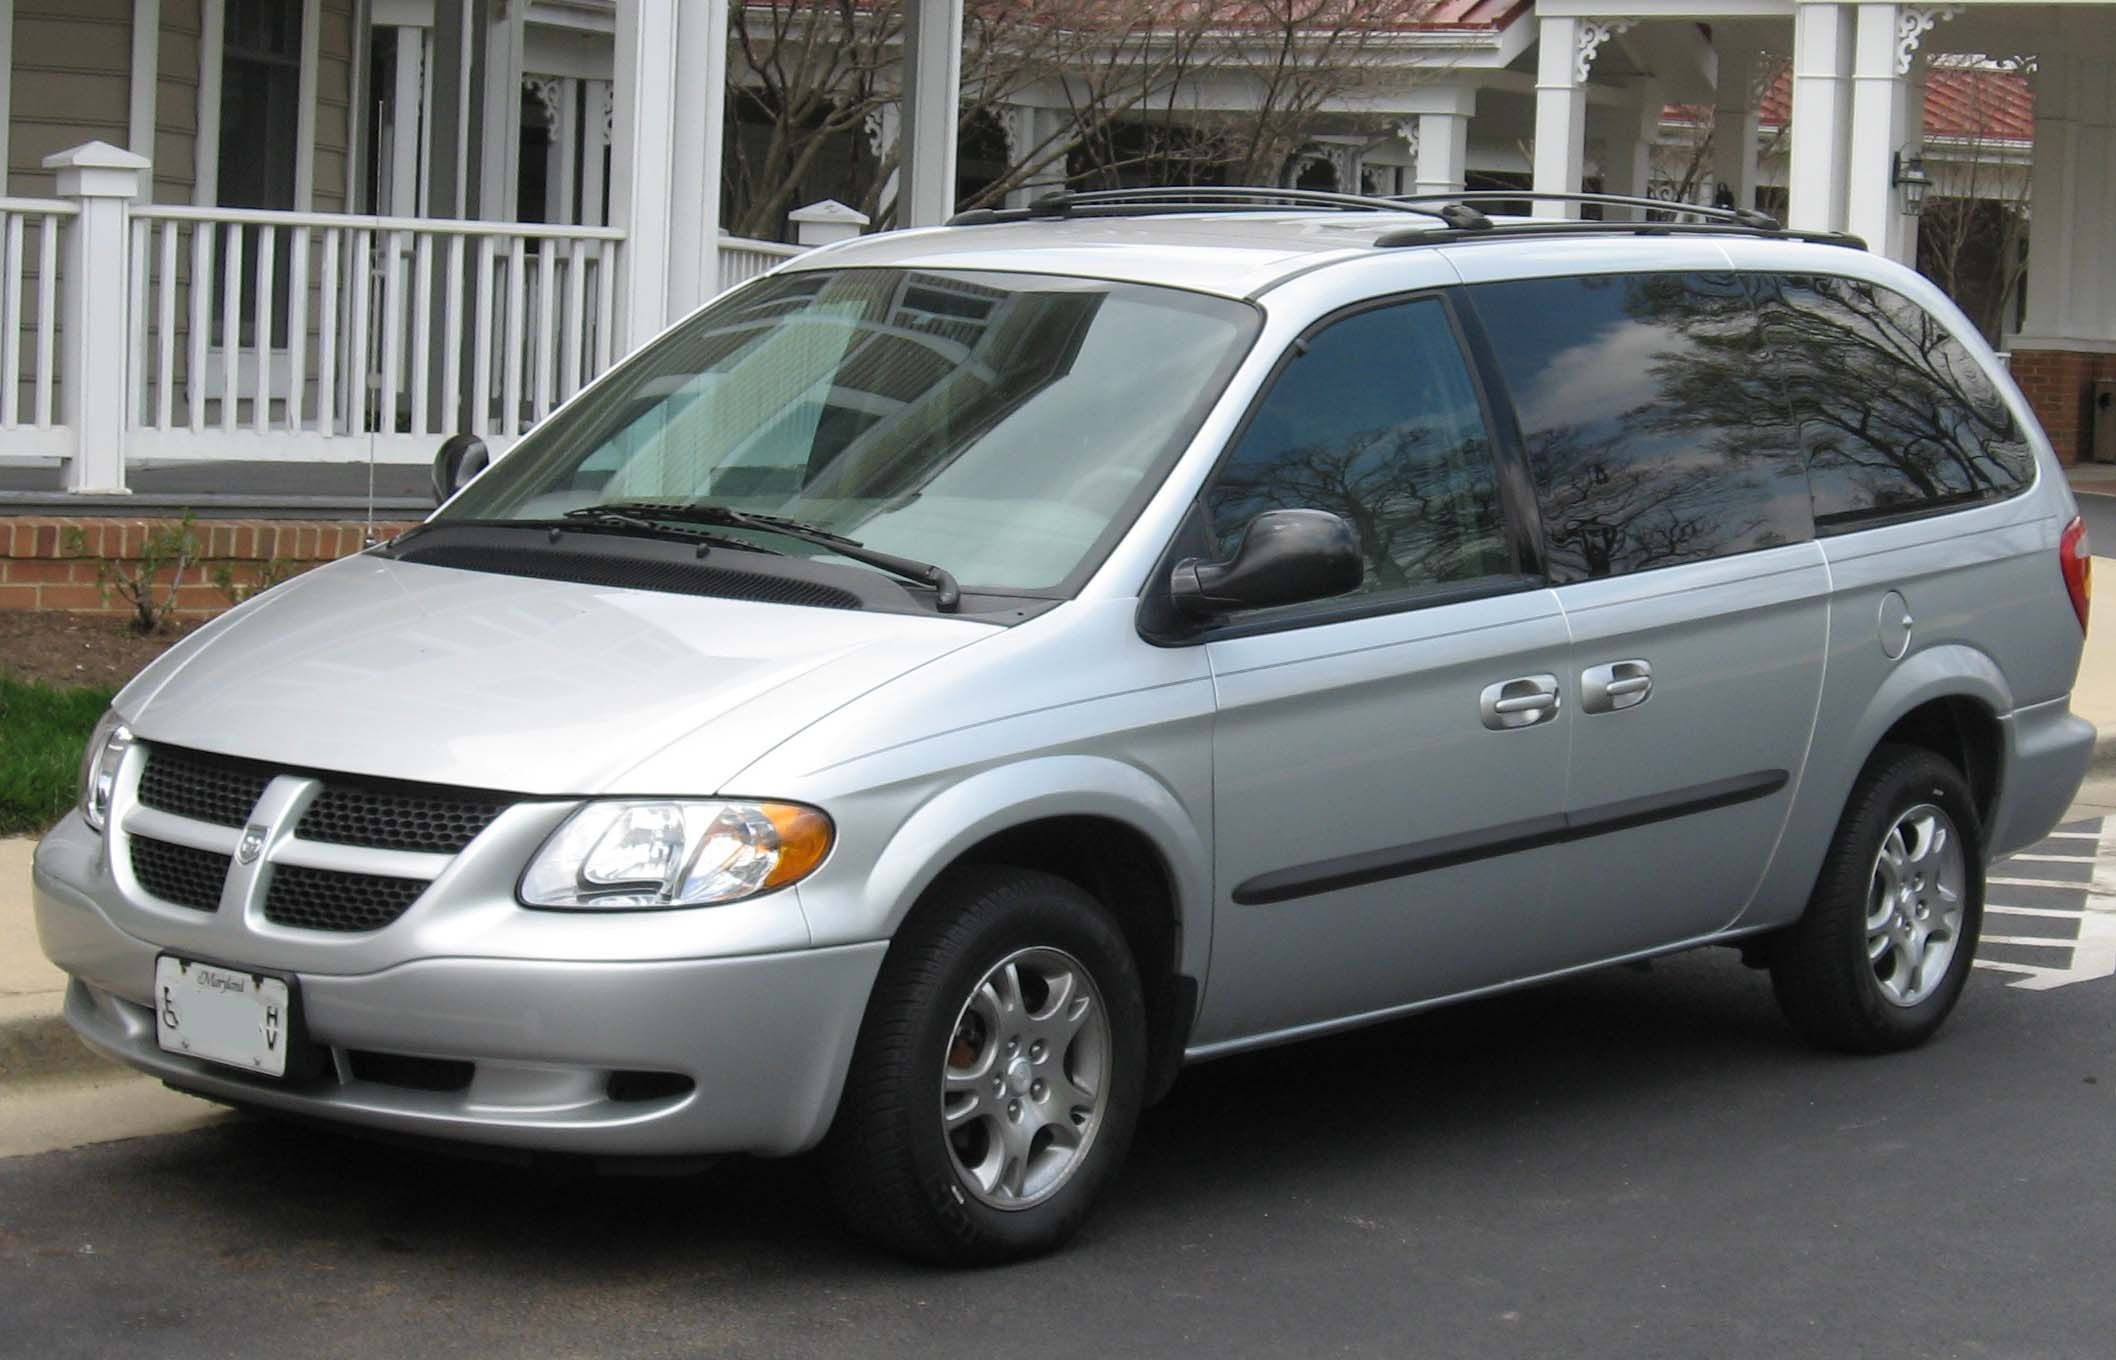 2004 Dodge Caravan Bought This When I Retired From Teaching And